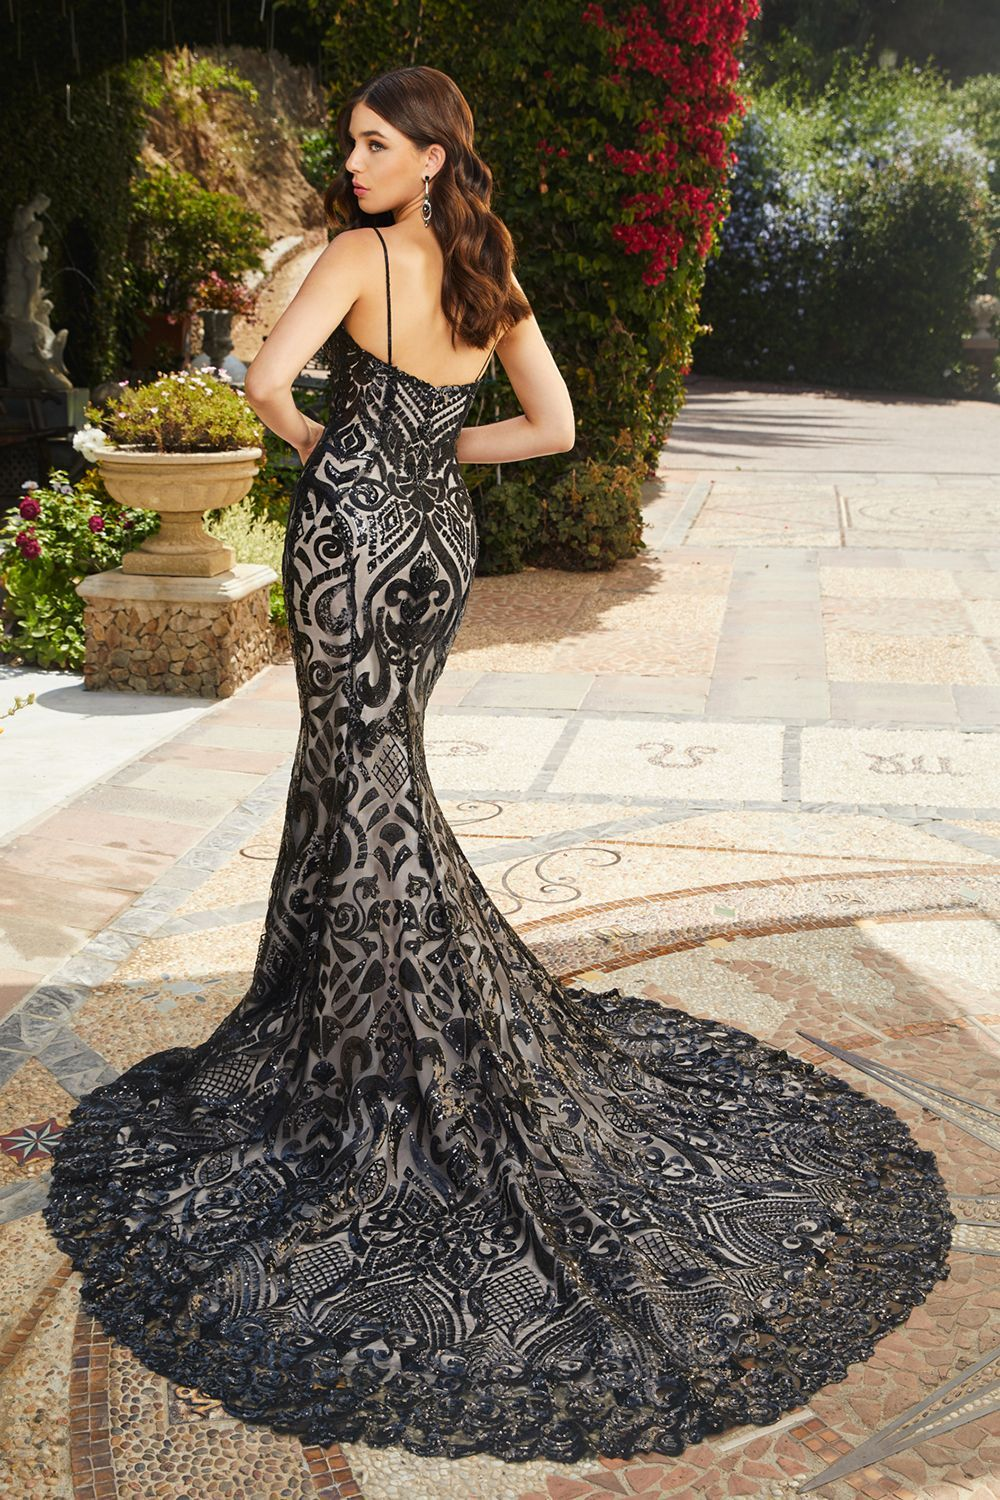 Looking for a black wedding dress? Style 2396 Keaton by